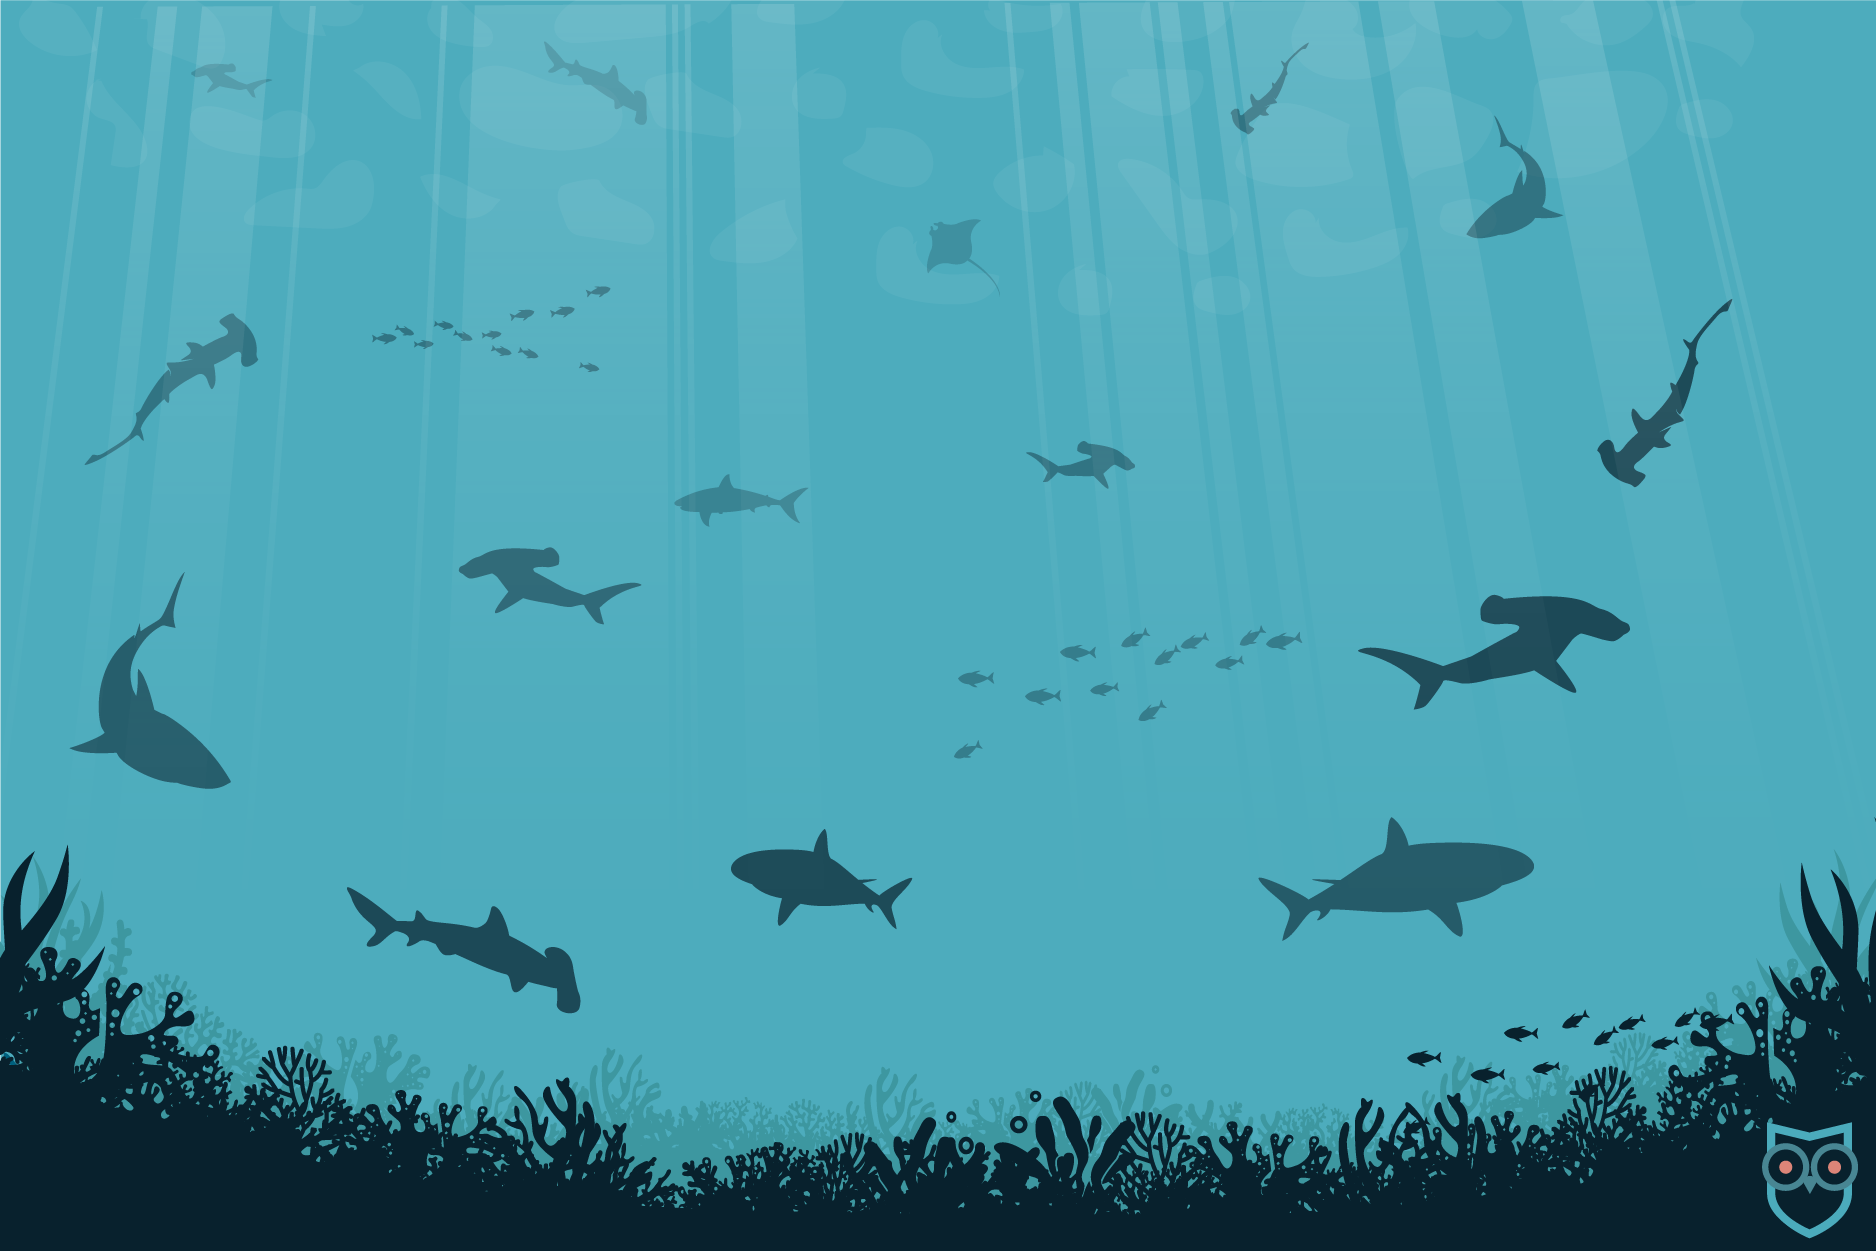 How to Avoid Becoming Shark Bait - Two Decades of Shark